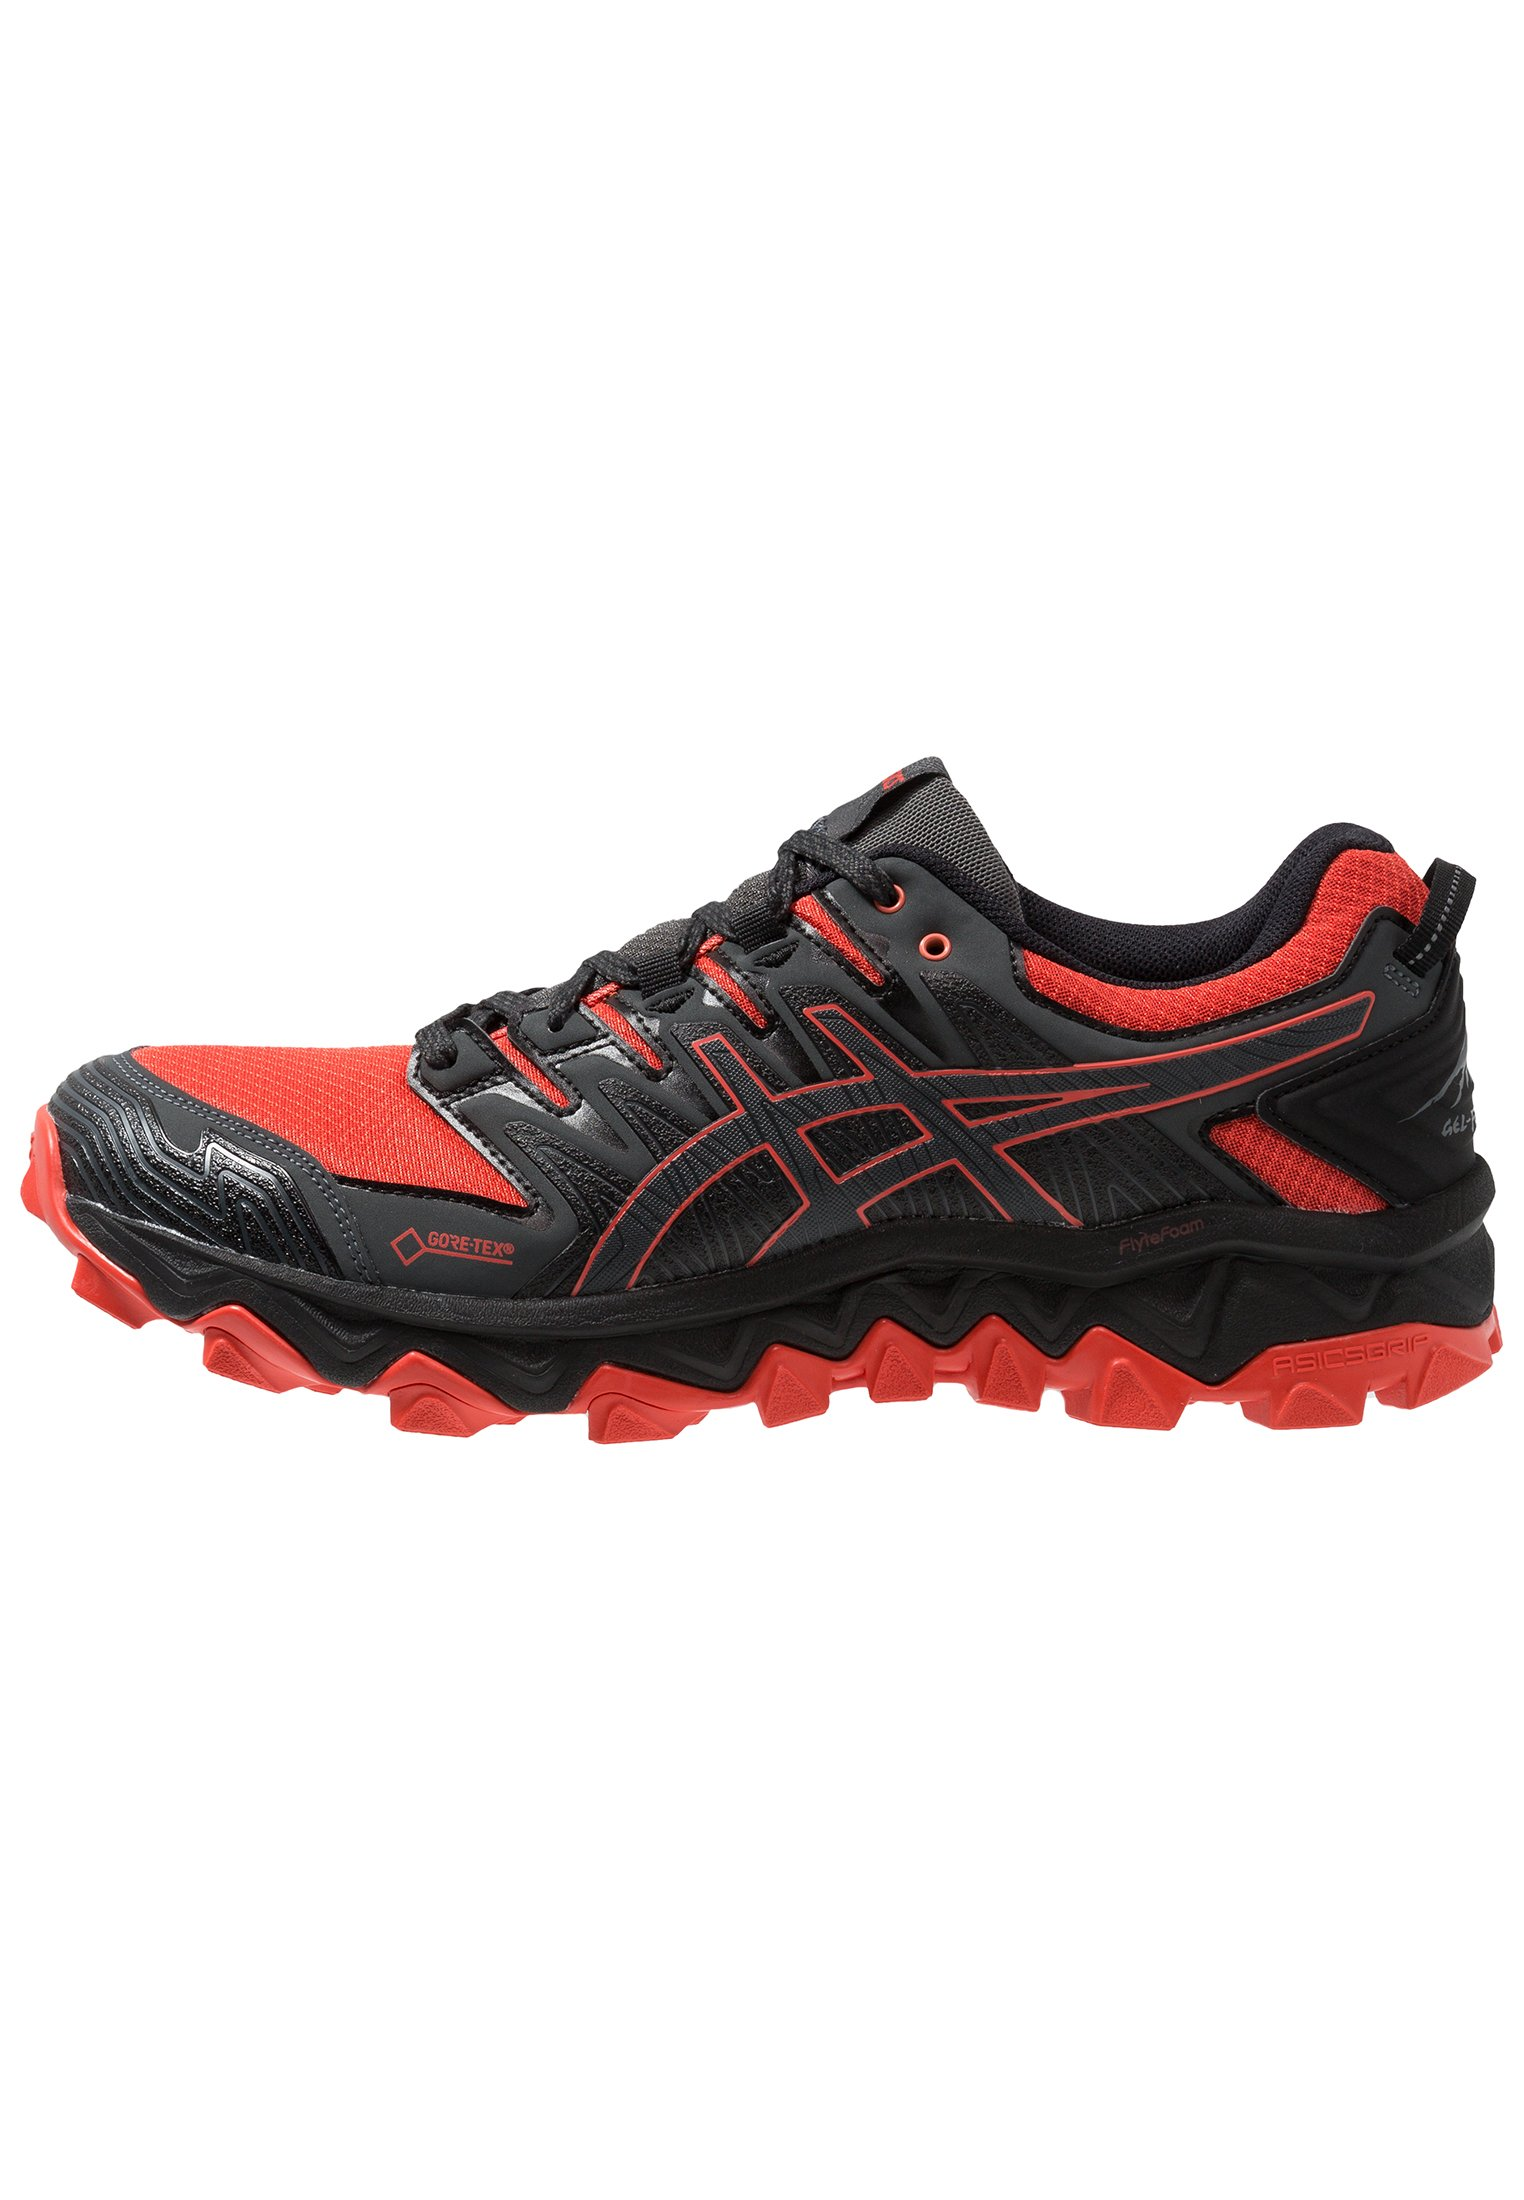 GEL FUJITRABUCO 7 G TX Laufschuh Trail red snapperdark grey